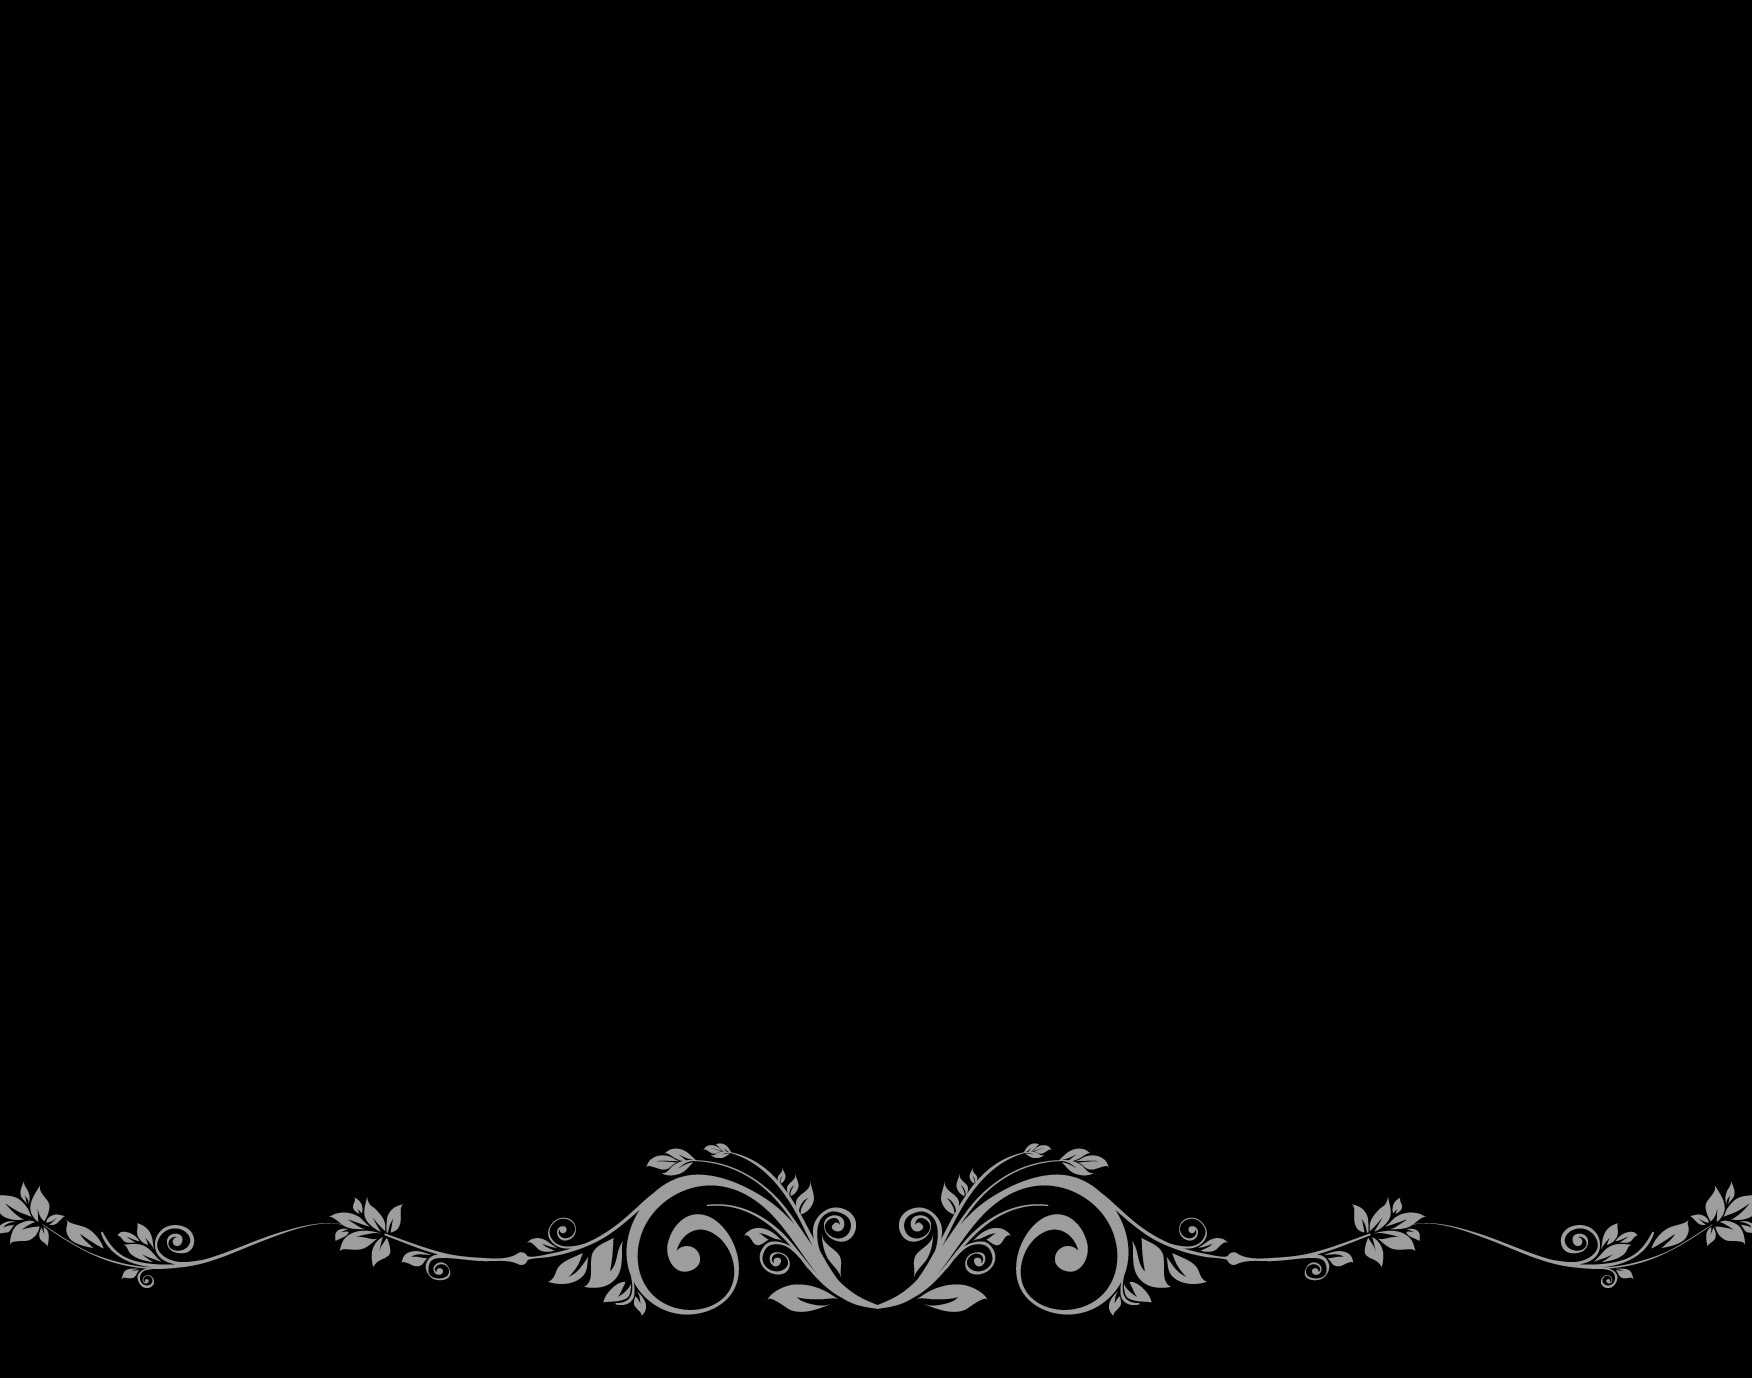 Design Wallpaper and Background Image | 1752x1378 | ID ...